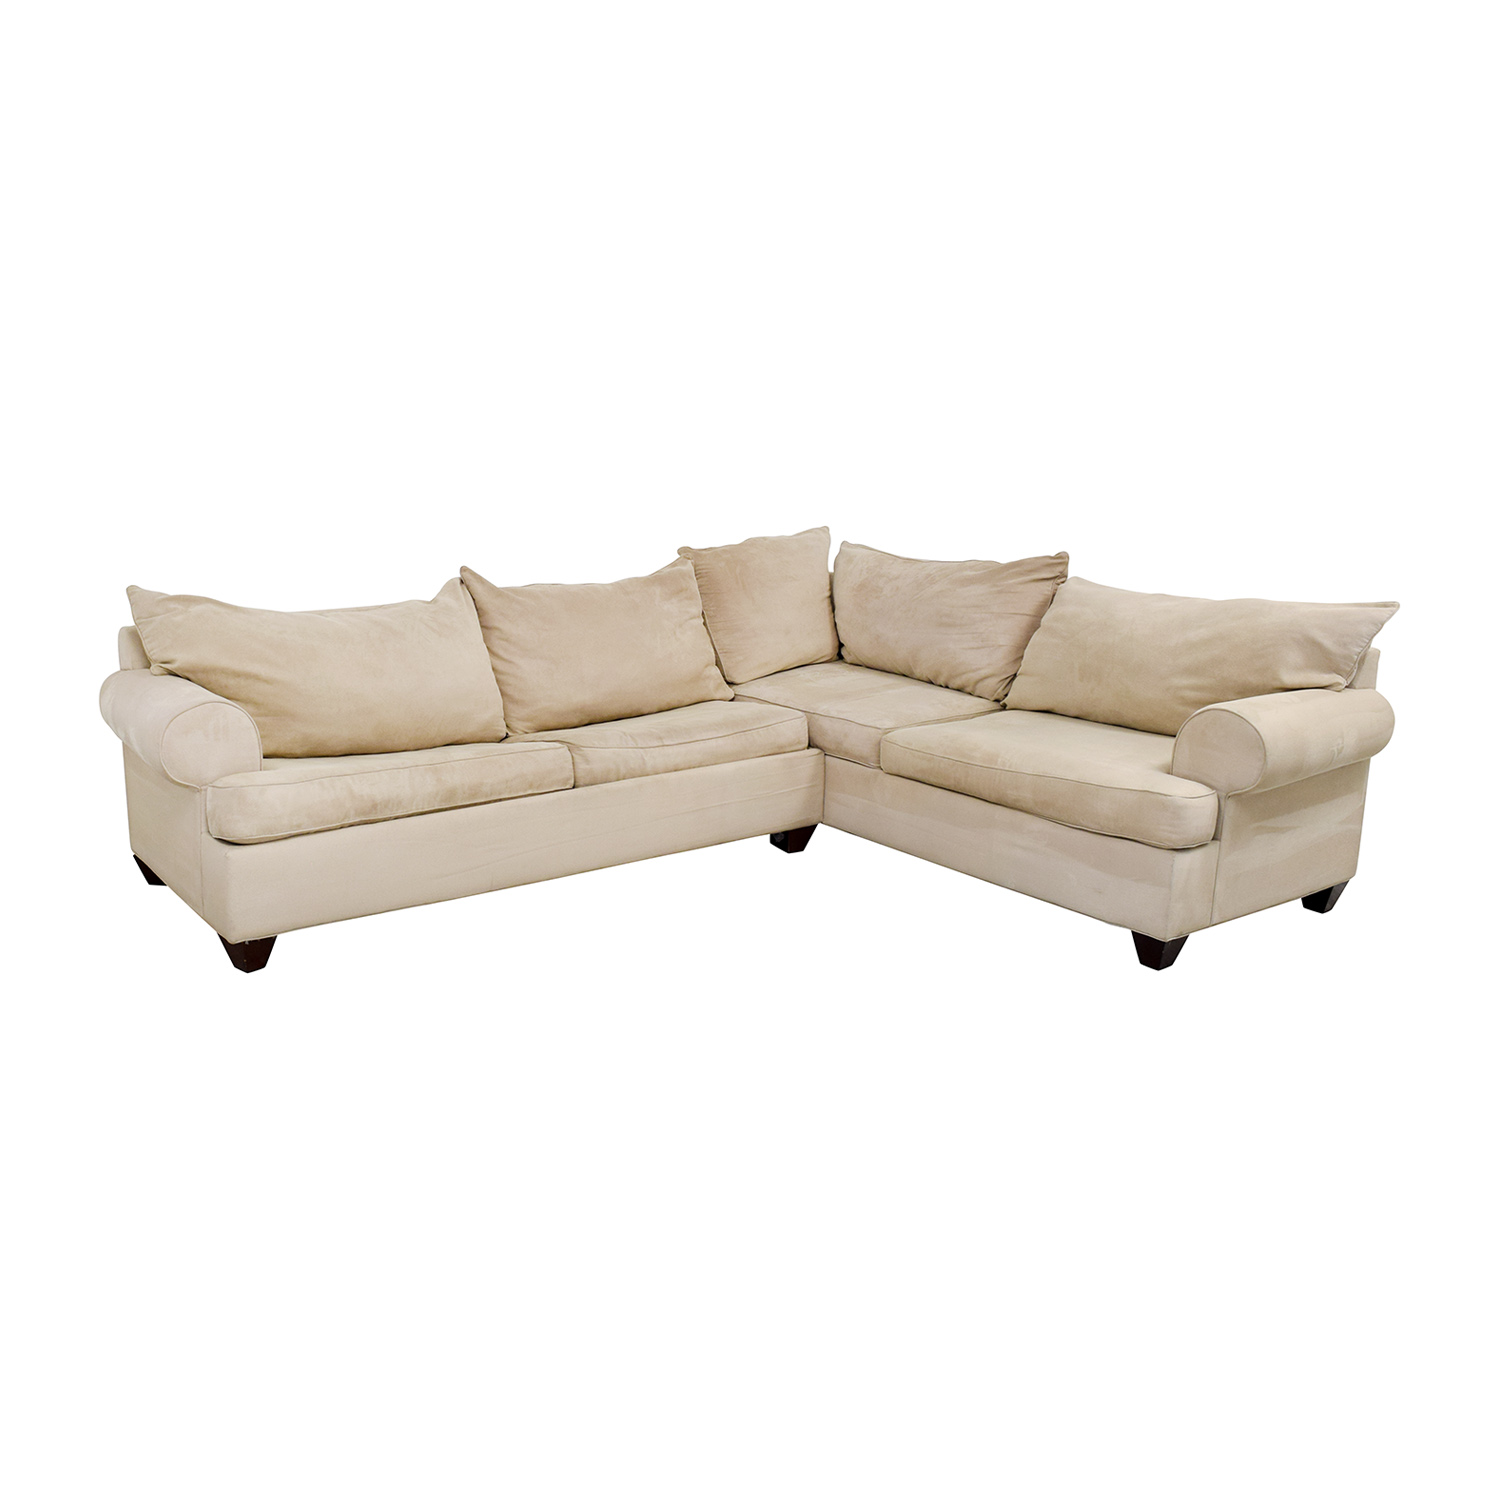 Raymour & Flanigan Raymour & Flanigan Sectional Sleeper Sofa beige